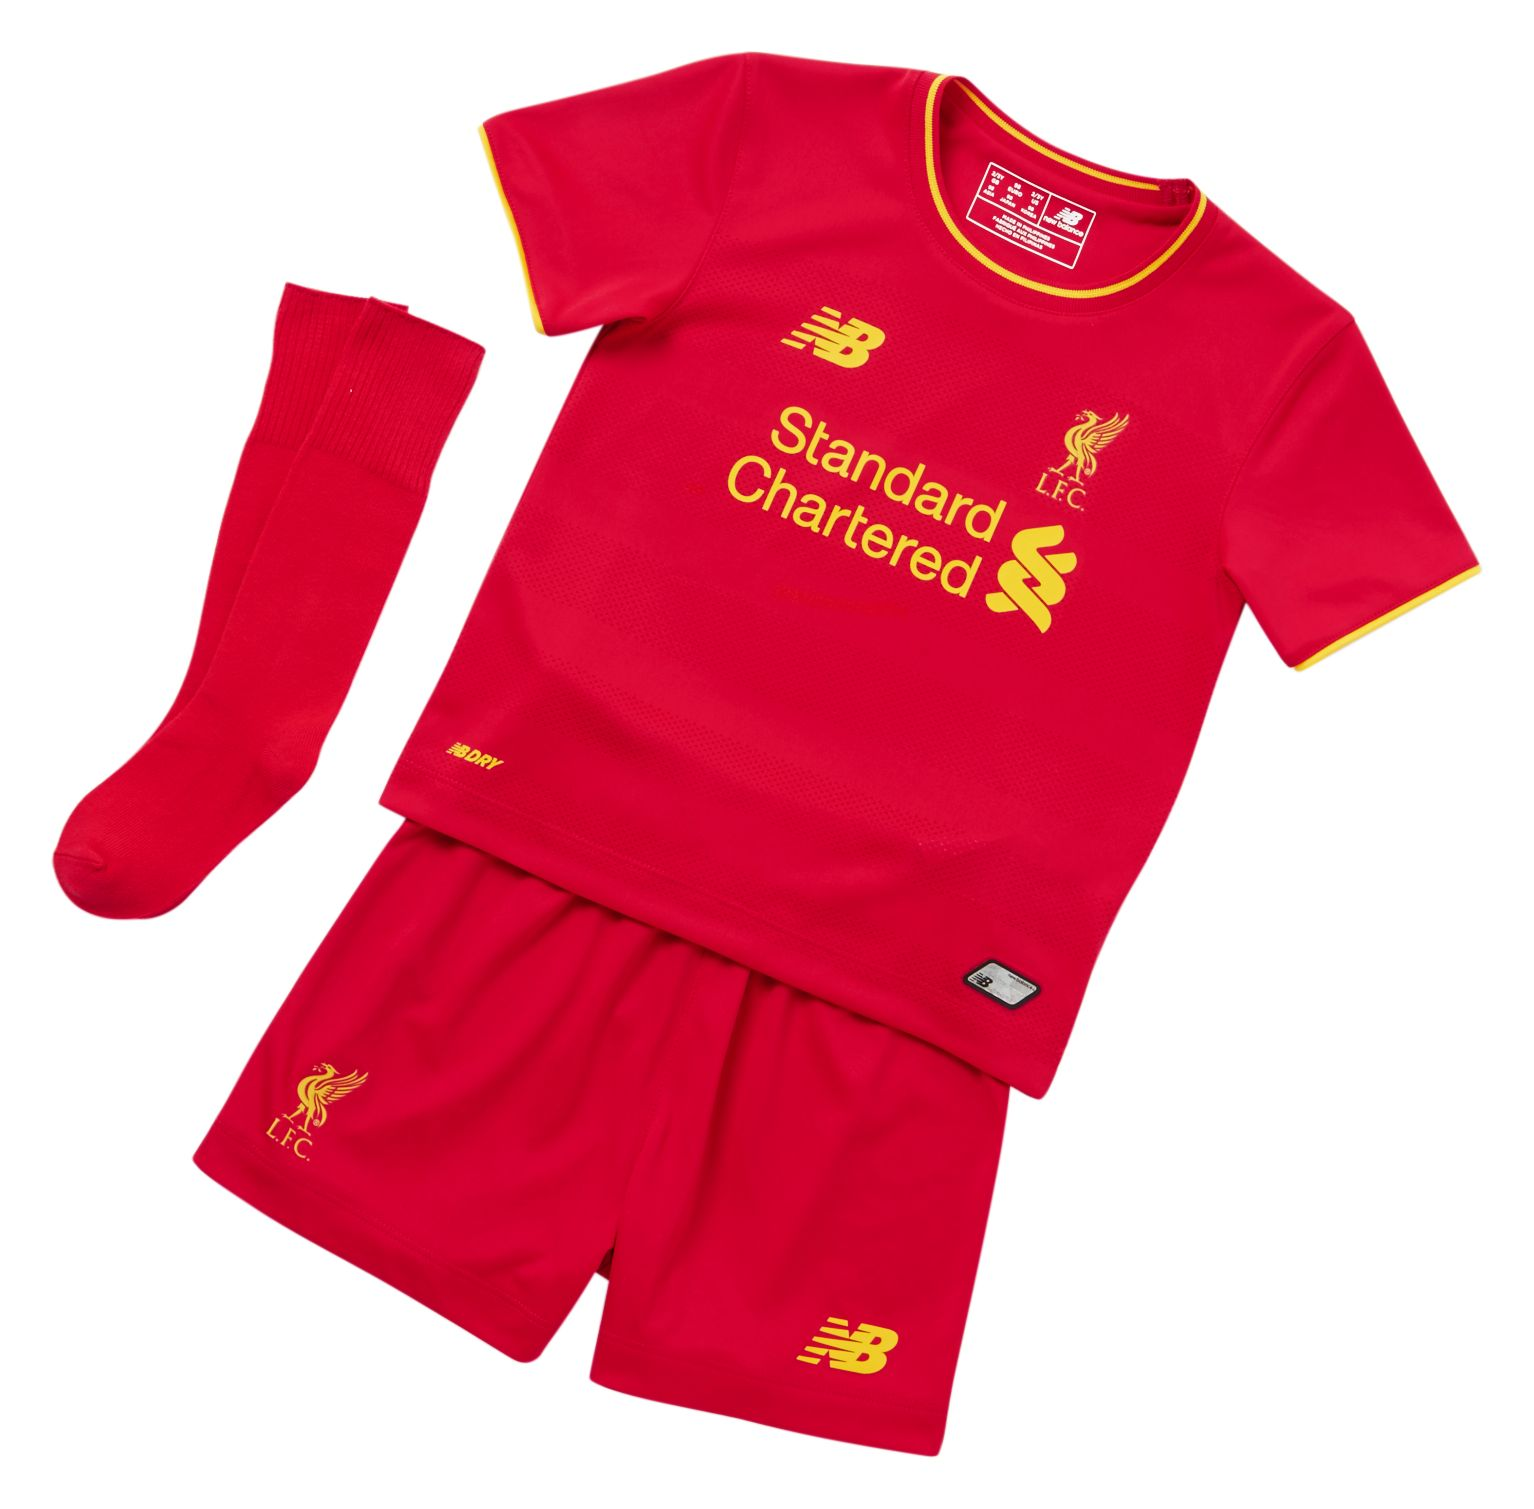 New Balance : LFC Infant Home Kit : Unisex 2016/17 Home Kit : IY630001HRD